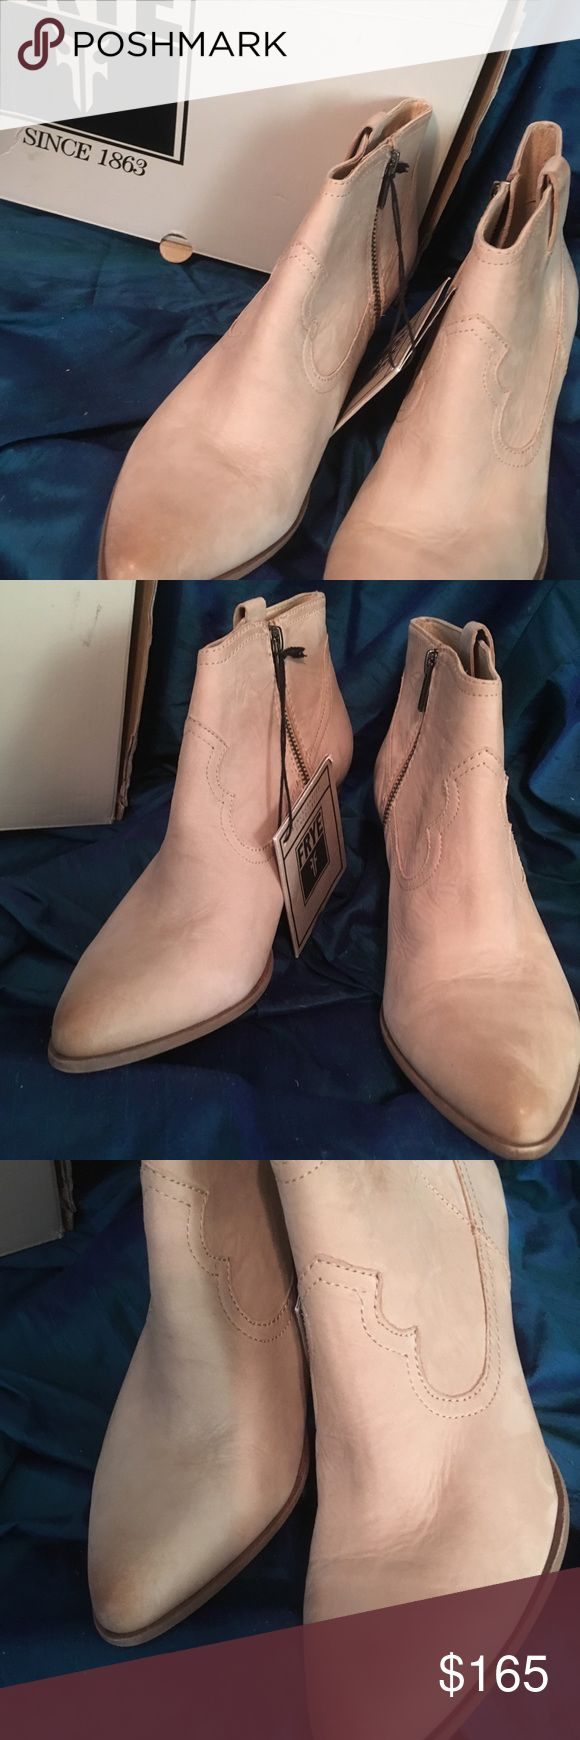 WOMEN'S FRYE BOOTS.REINA BOOTIE US SZ 9.5. LADIES FRYE BOOT REINA BOOTIE, STONE COLOR.  PURCHASED AT AN EAST COAST SHOE STORE LIQUIDATION. US SZ 9.5. Frye Shoes Ankle Boots & Booties